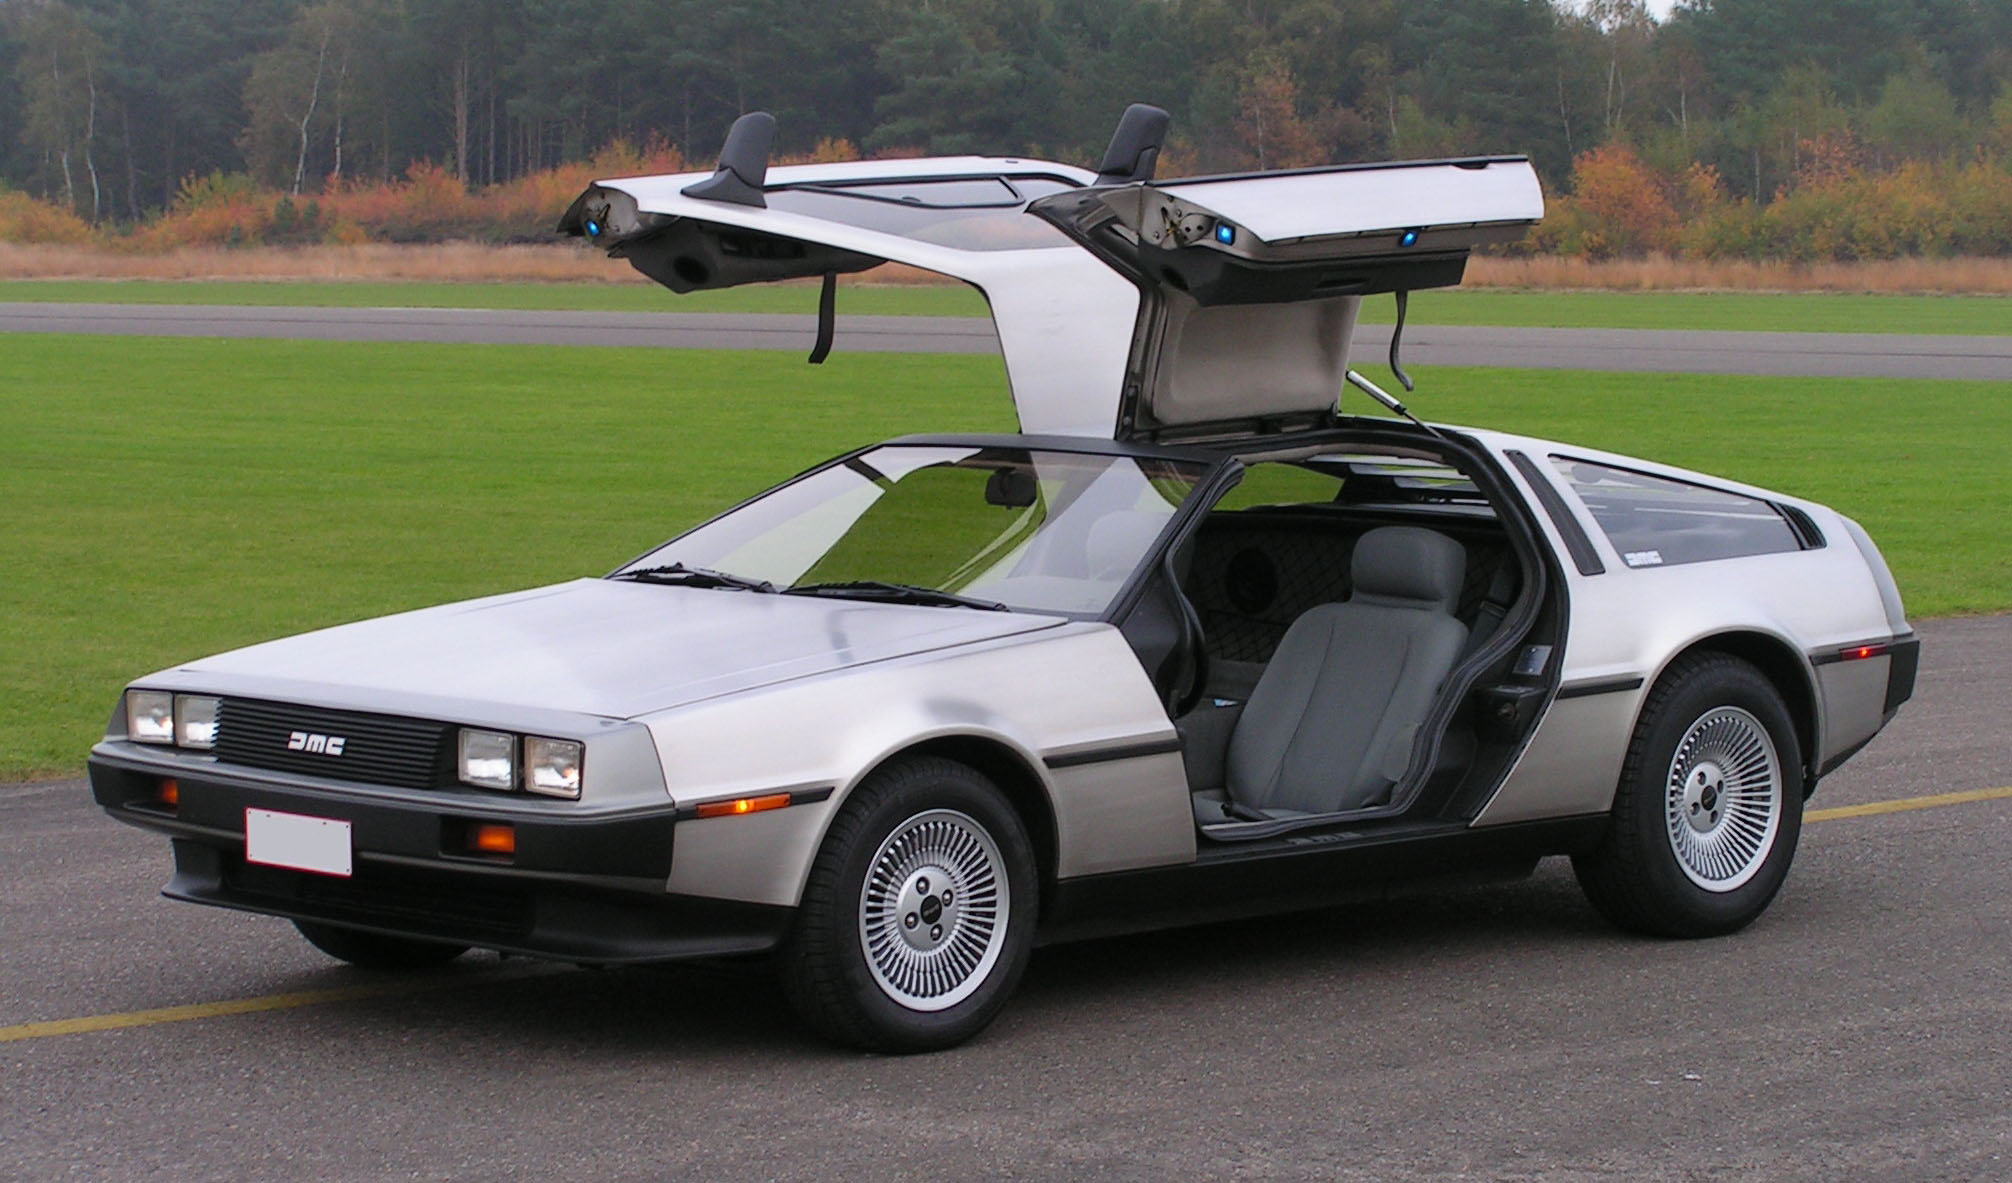 Back To The Future Dmc Delorean Motor Company